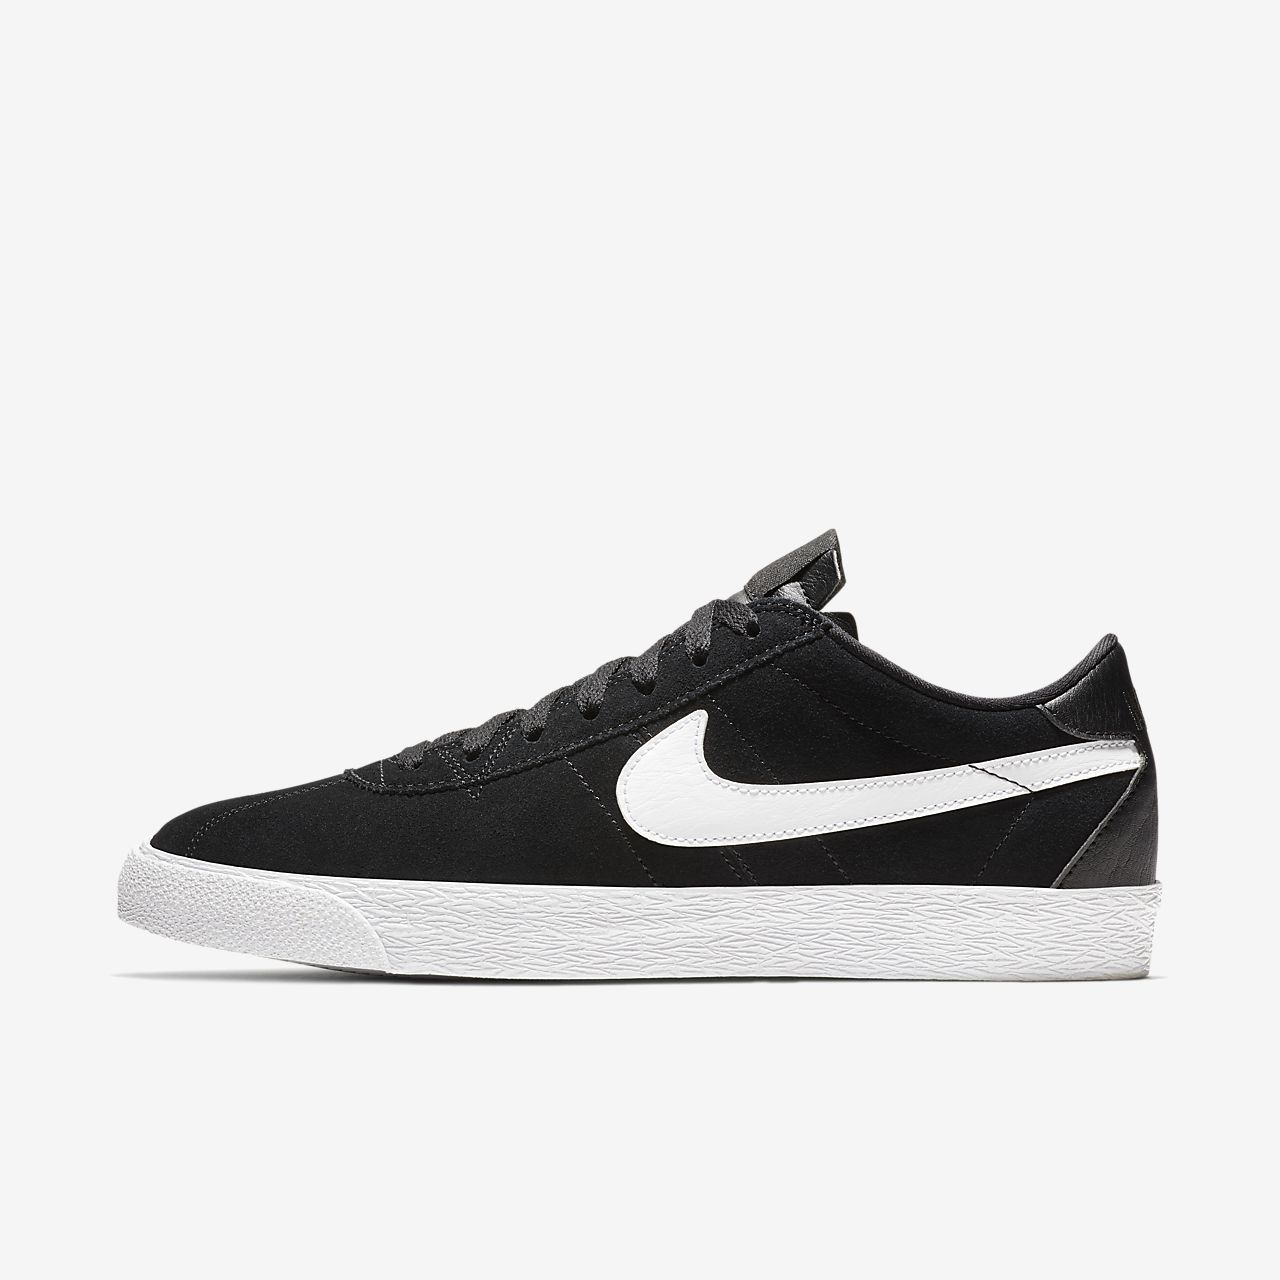 Nike SB Zoom Bruin Premium SE Men's Skateboarding Shoes Black fZ9382K